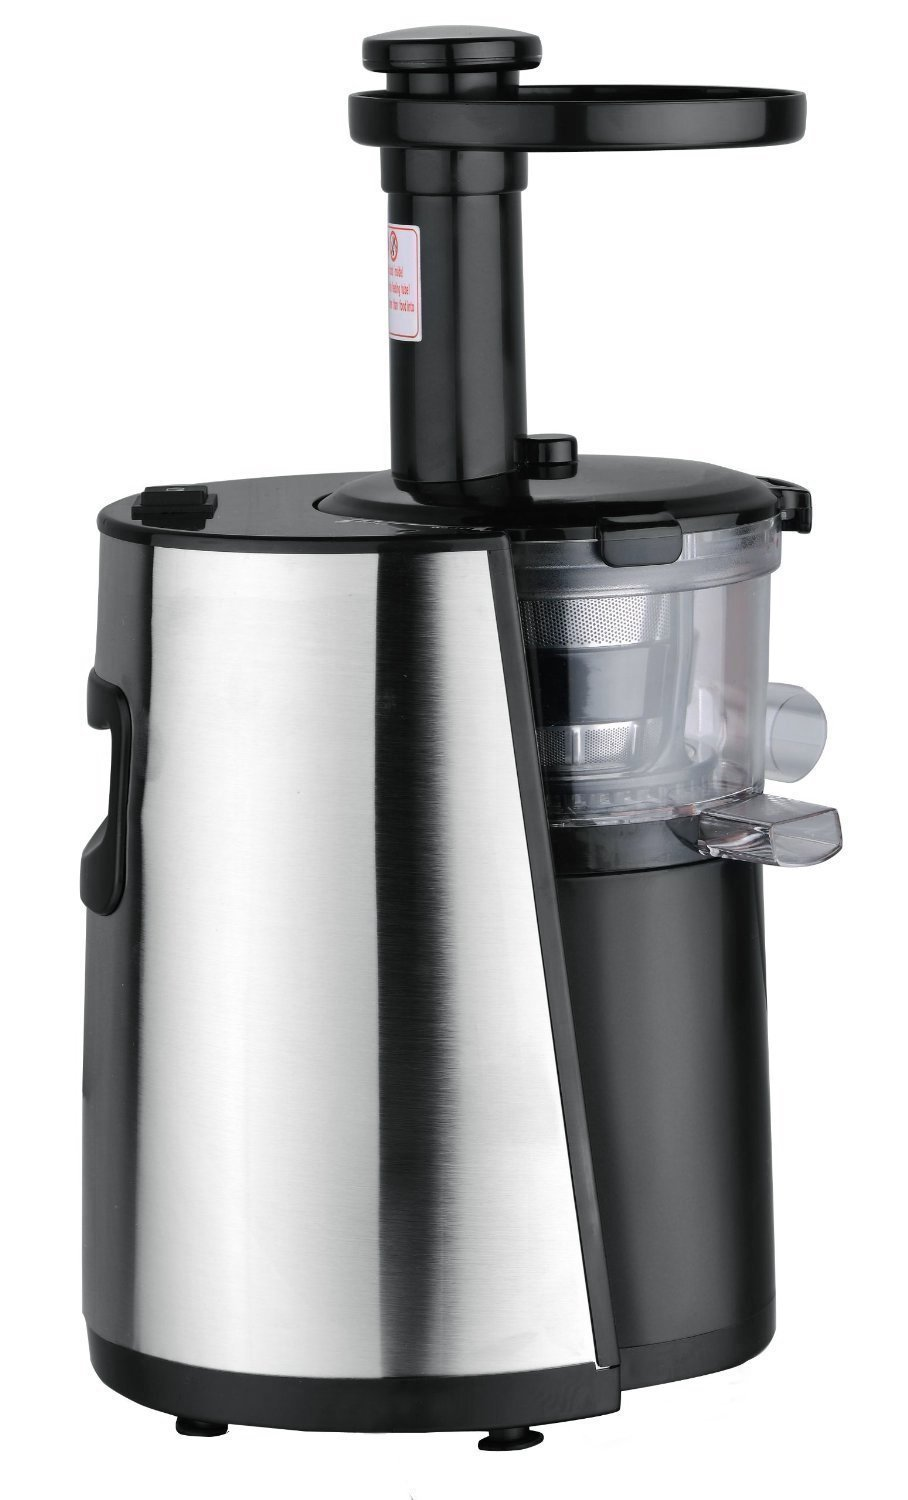 Slow Juicer For Hard Vegetables : Top 10 best masticating juicers reviews